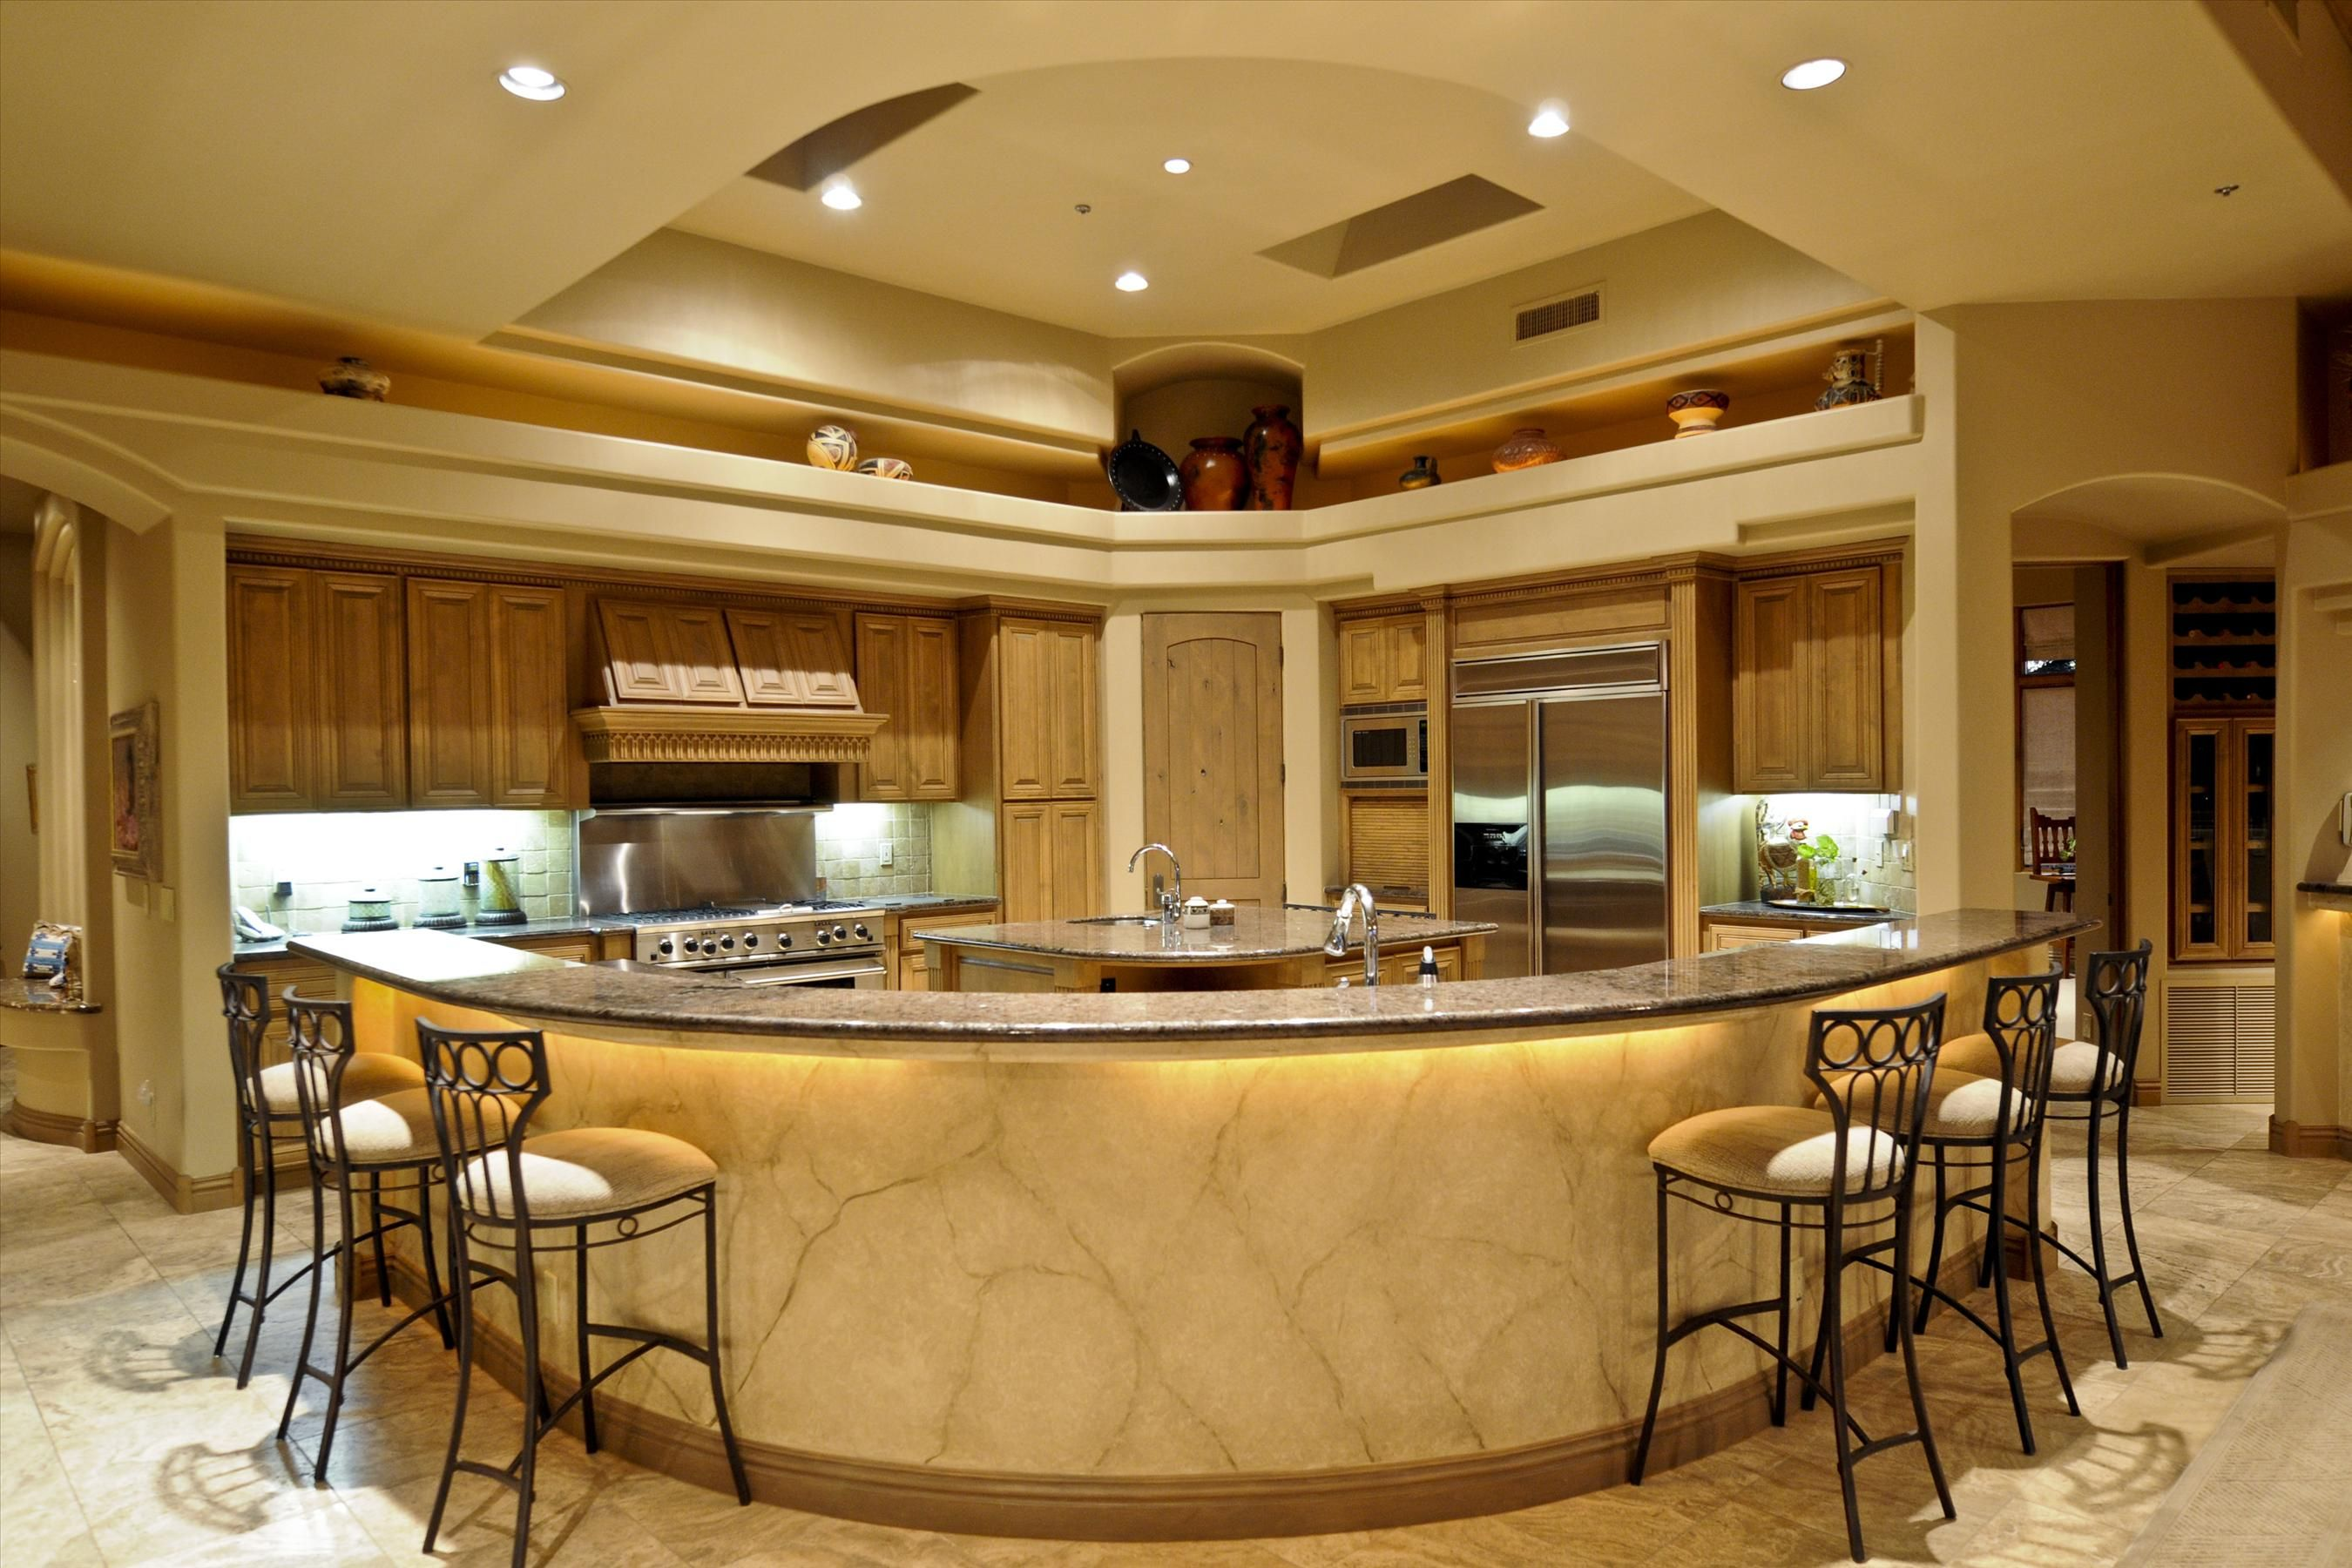 Premier luxury kitchens custom designed and professionally installed by our kitchendesigns for Luxury kitchen cabinets design